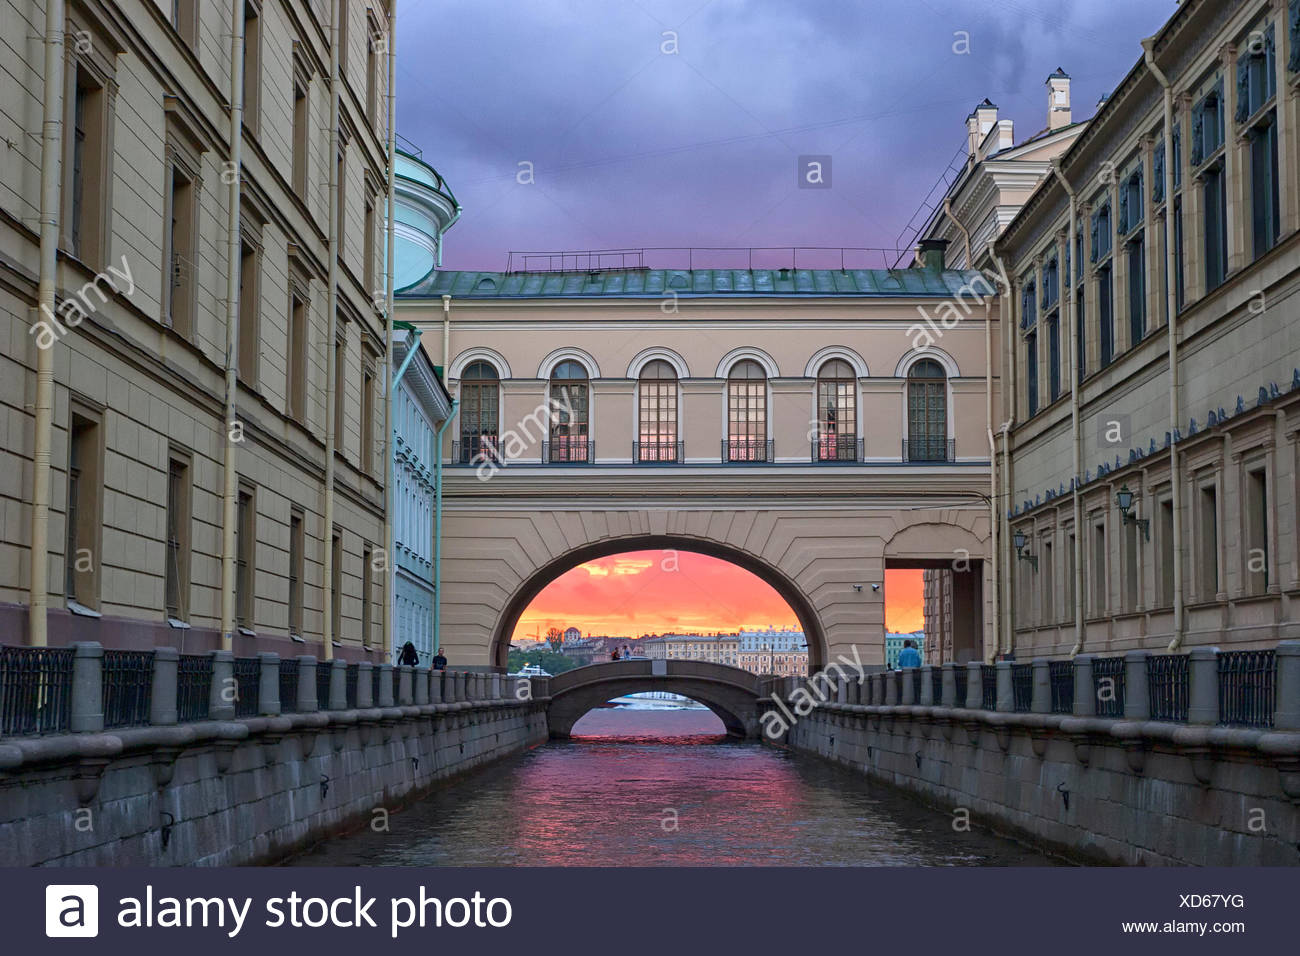 An archway over a canal in St Petersburg, Russia - Stock Image